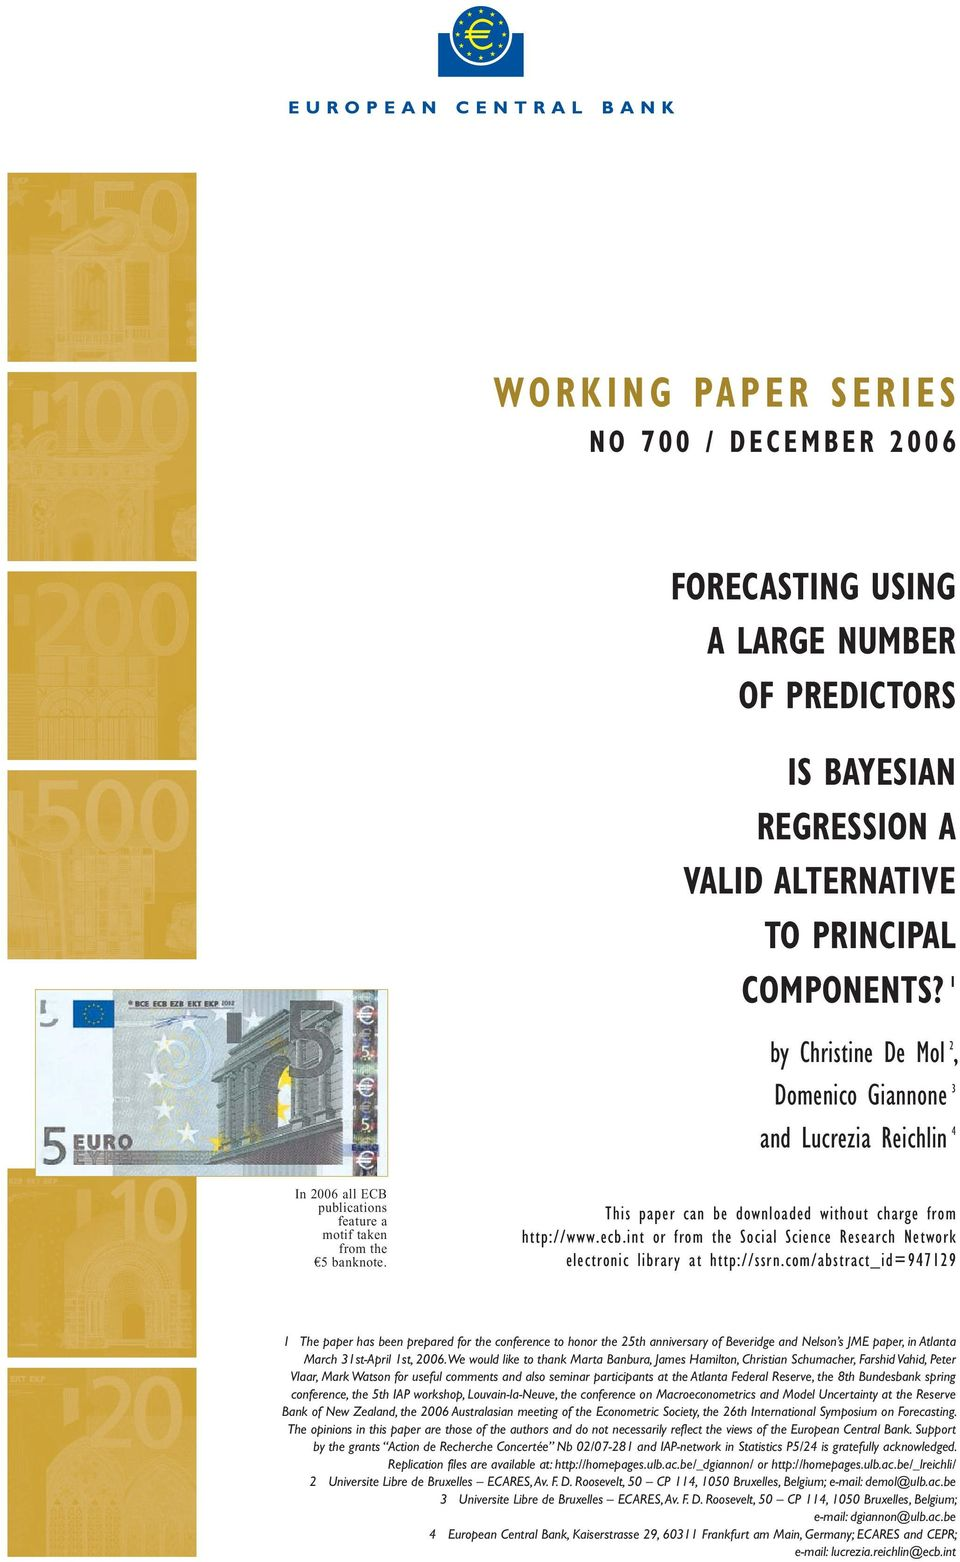 ecb.int or from the Social Science Research Network electronic library at http://ssrn.